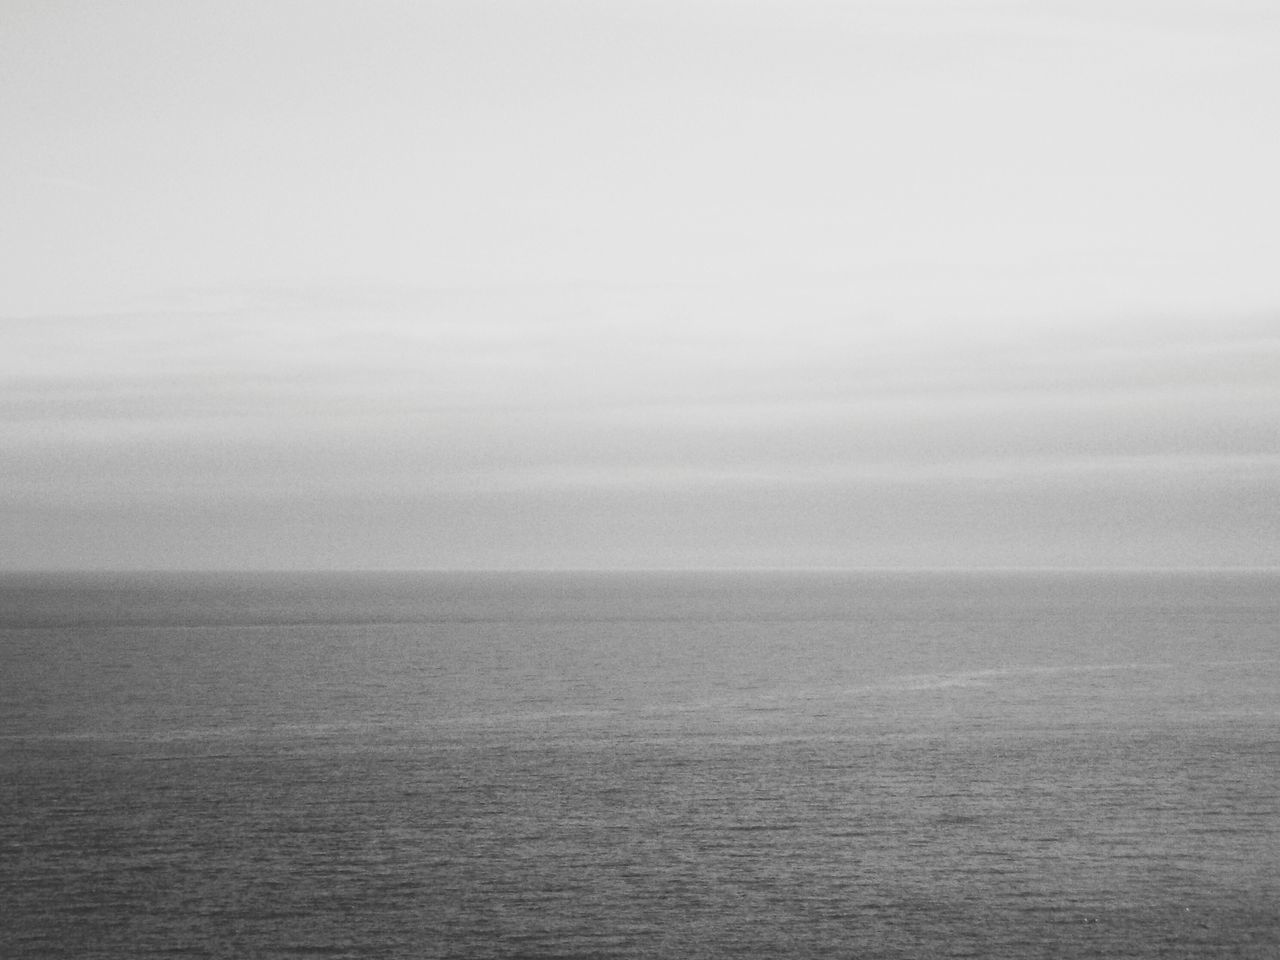 Sea Tranquility Sky Horizon Over Water Water Calm Sea Melancholy Thoughts Black And White Horizon Calm Calm Water Reflection Sea View Doubts Worries  Quiet Place  Alone Sea Water Ocean Ocean View